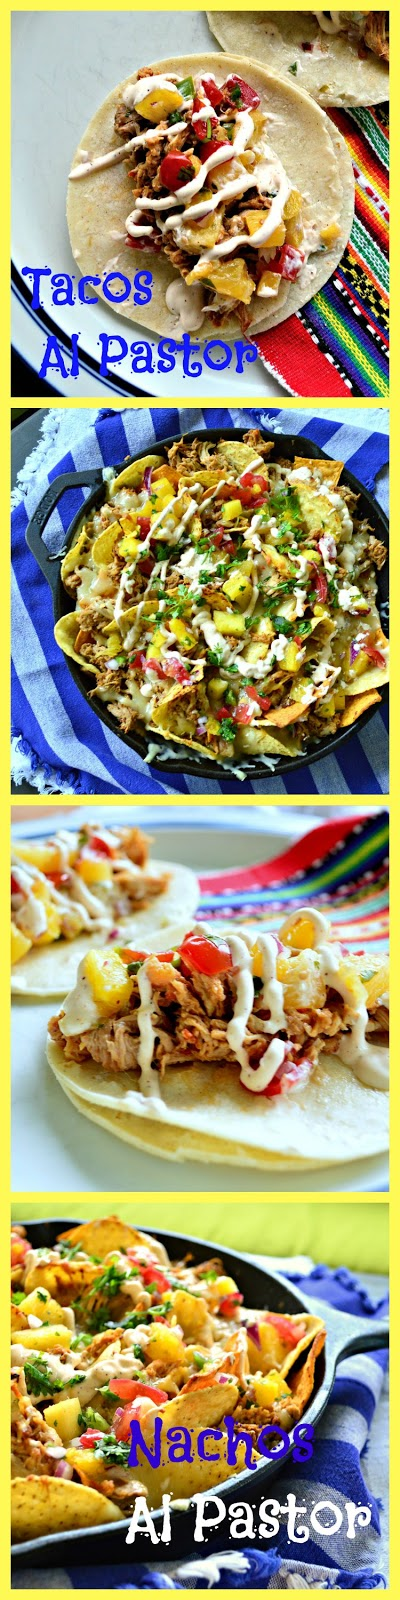 Tacos and Nachos al Pastor are made with pork and a marinade of seasonings and pineapple. So good serves on tacos or nachos. Perfect with a pineapple salsa and a chipotle drizzle. #nachos #tacos #MexicanFood www.thisishowicook.com